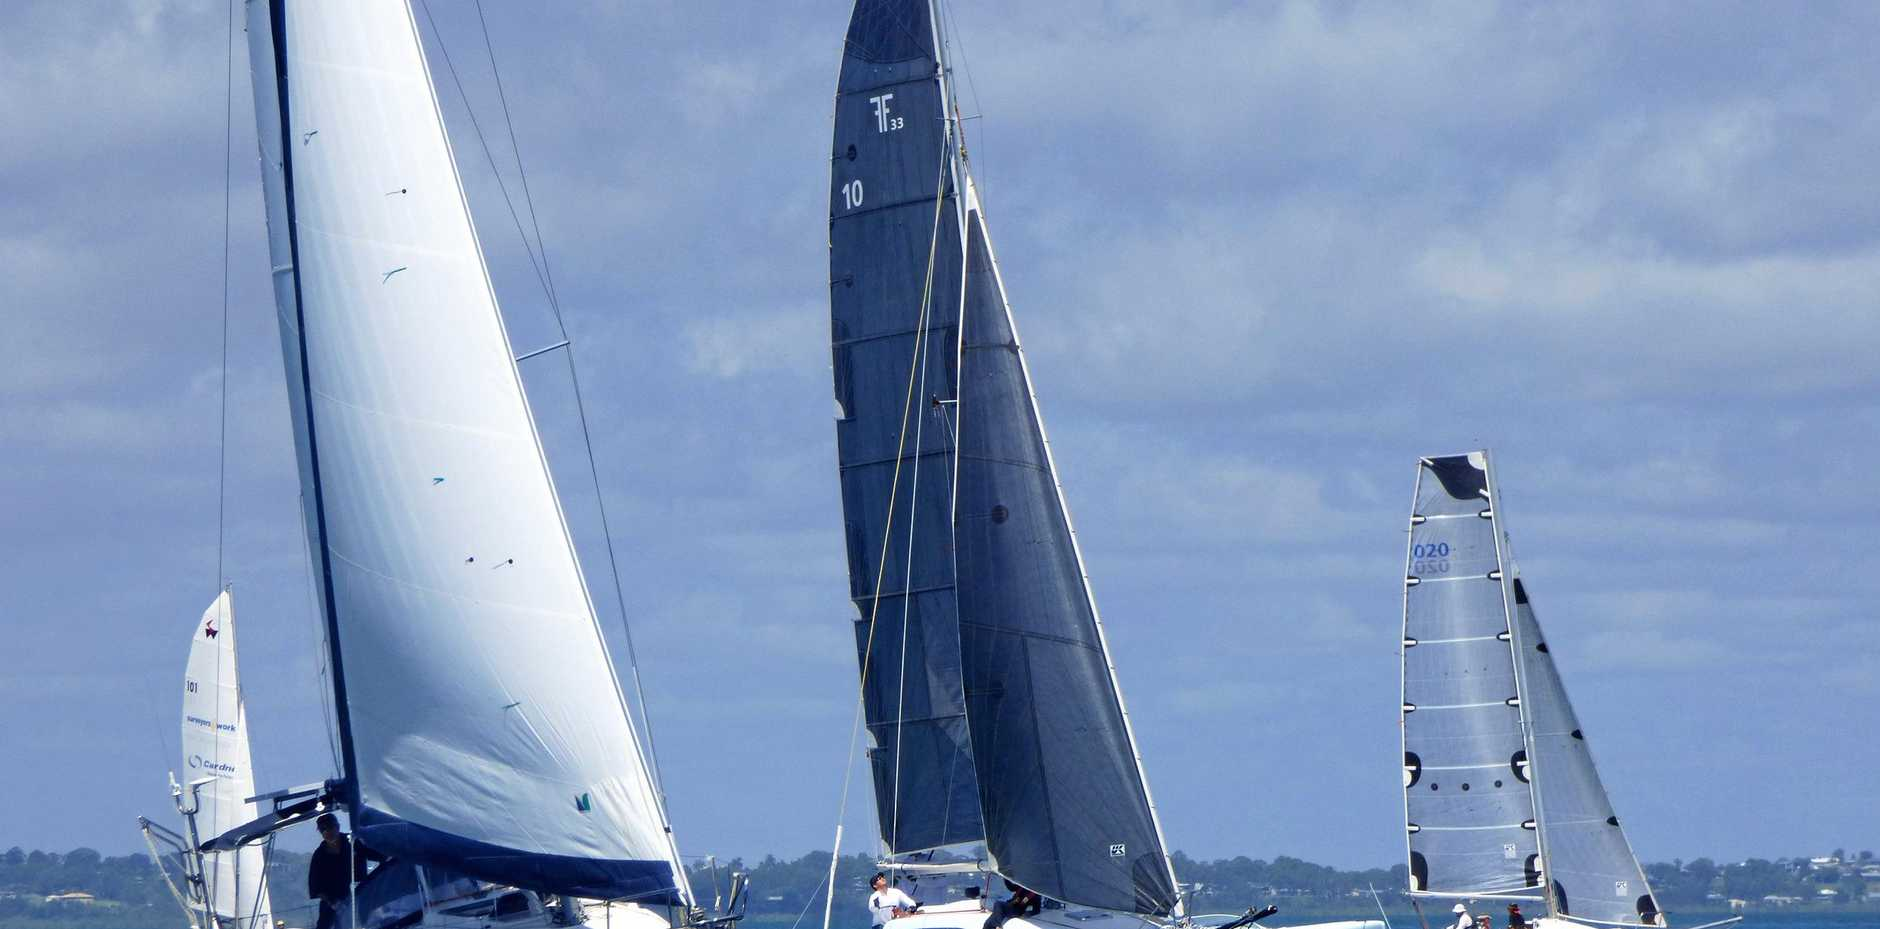 BREEZY SAILING: More than a dozen boats are expected to take to the water for the 27th Kingfisher Bay Resort Regatta next week.